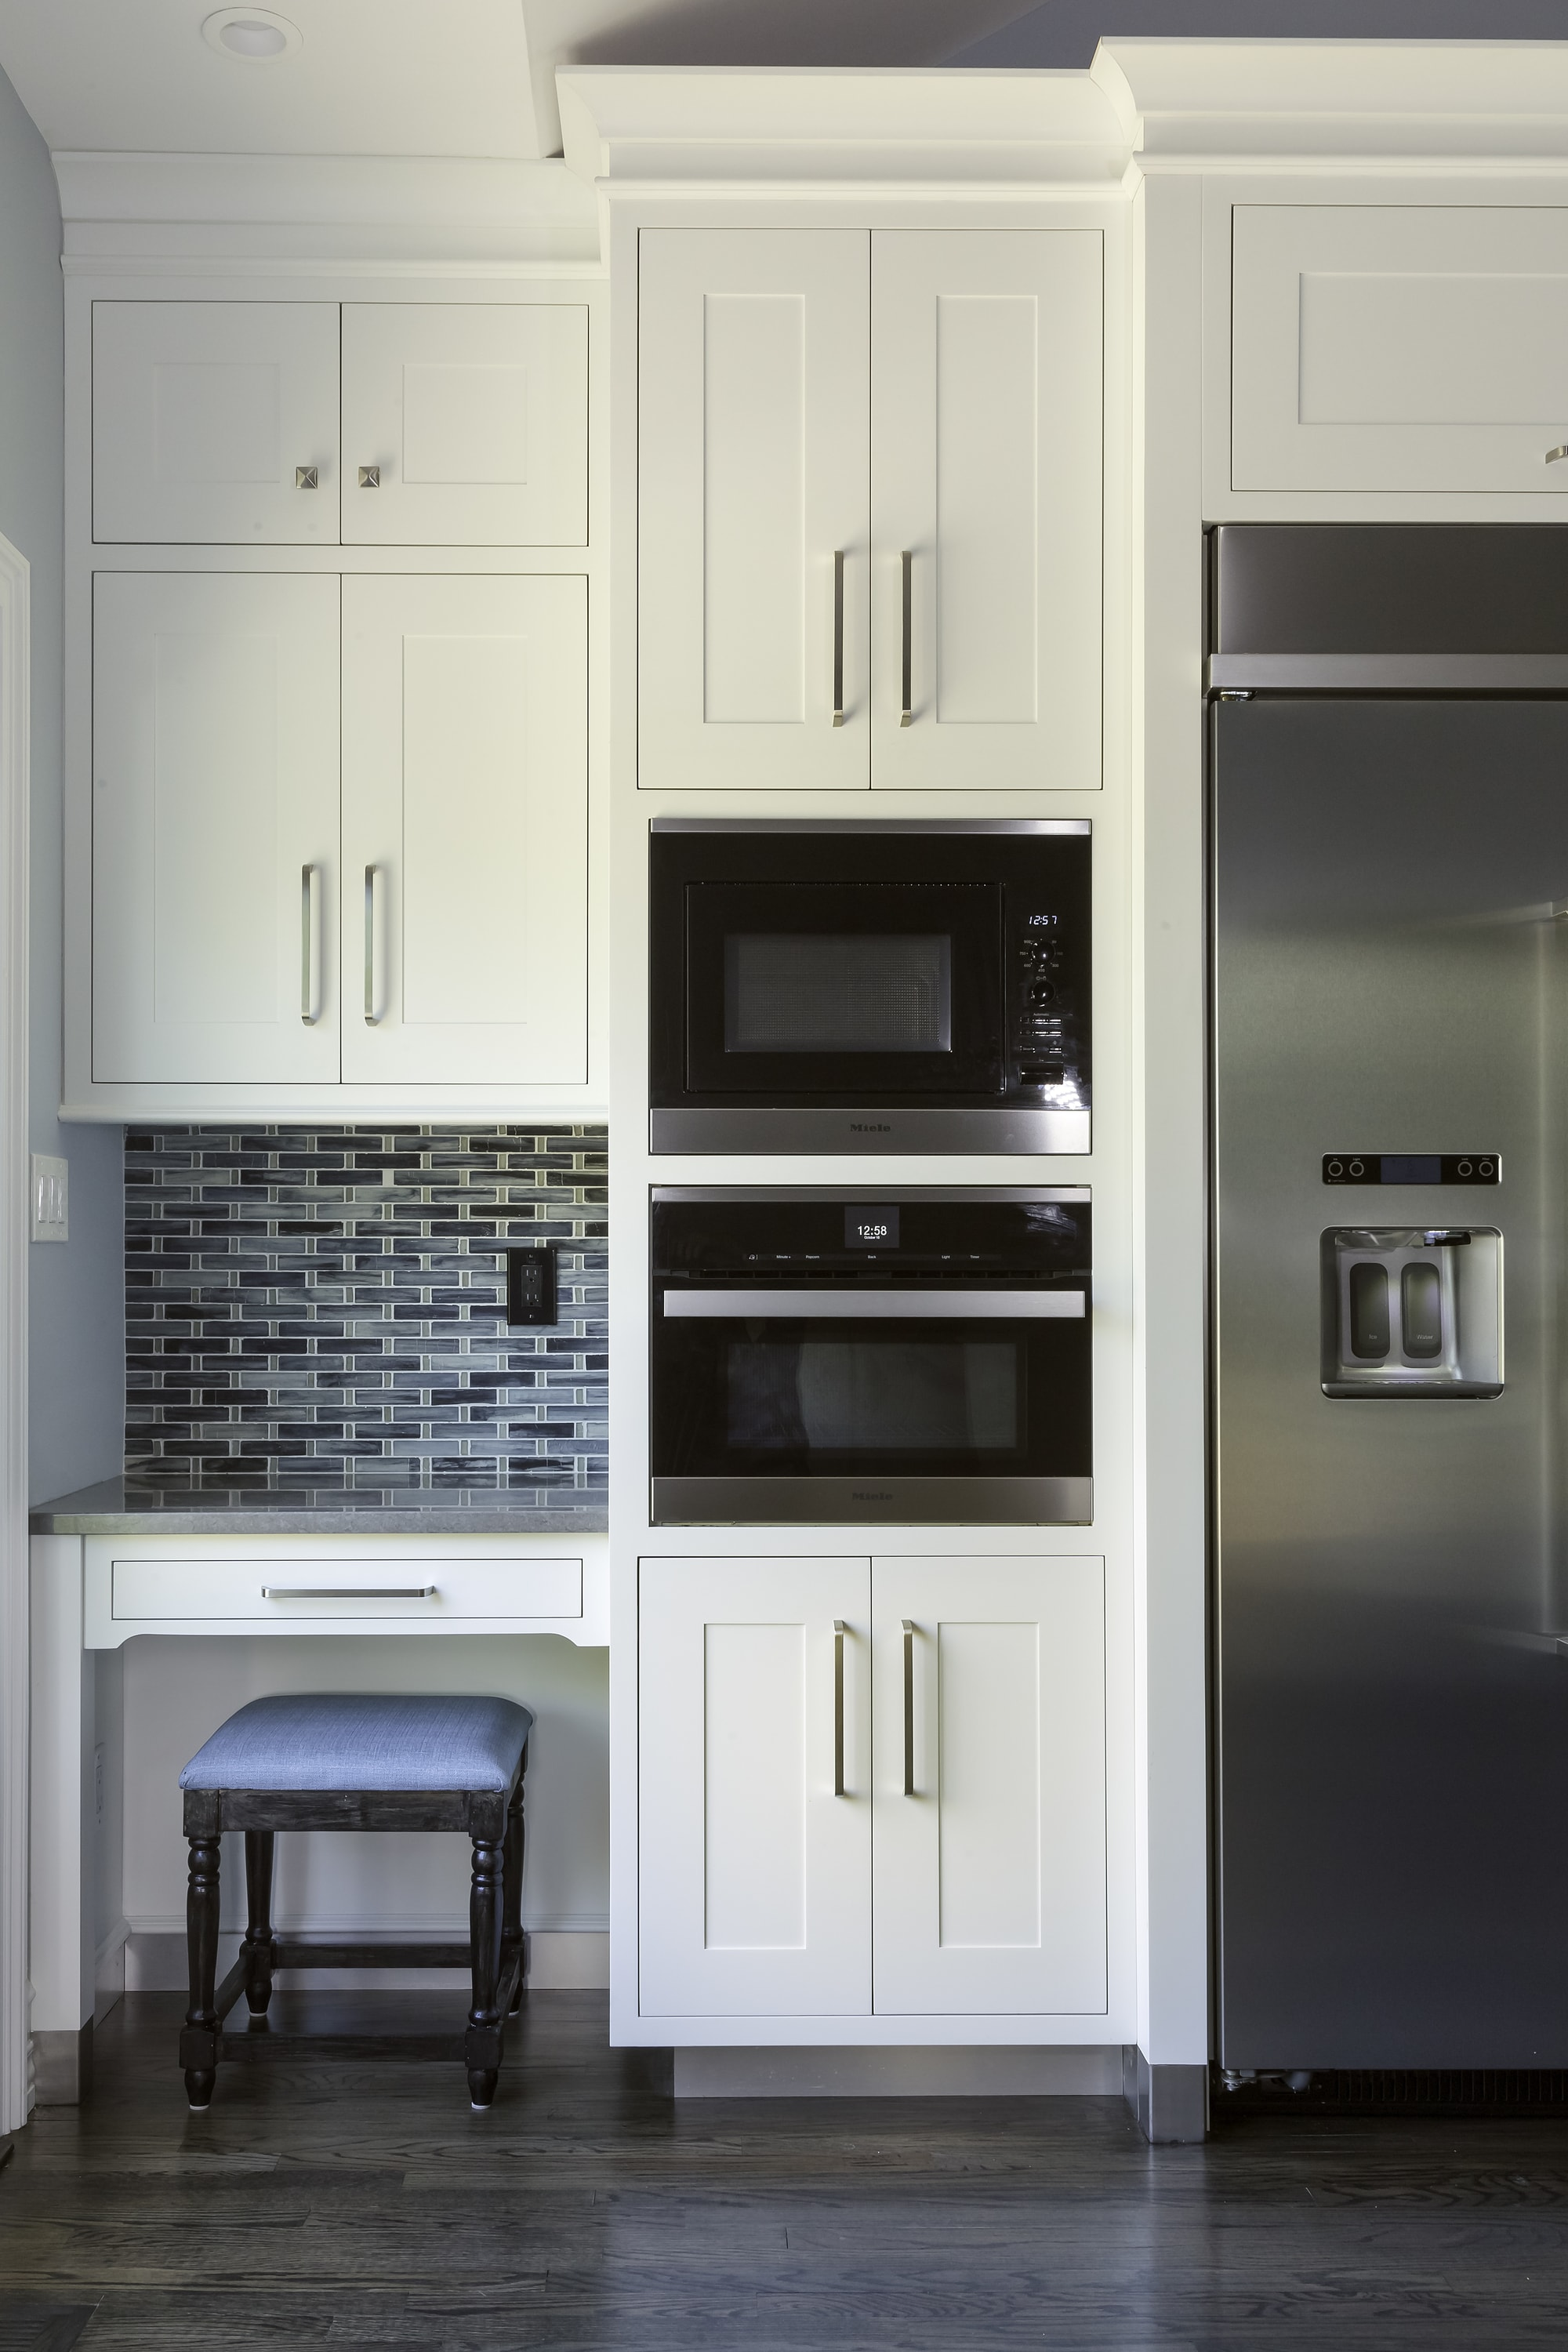 Transitional style kitchen with work table and speed cooking oven